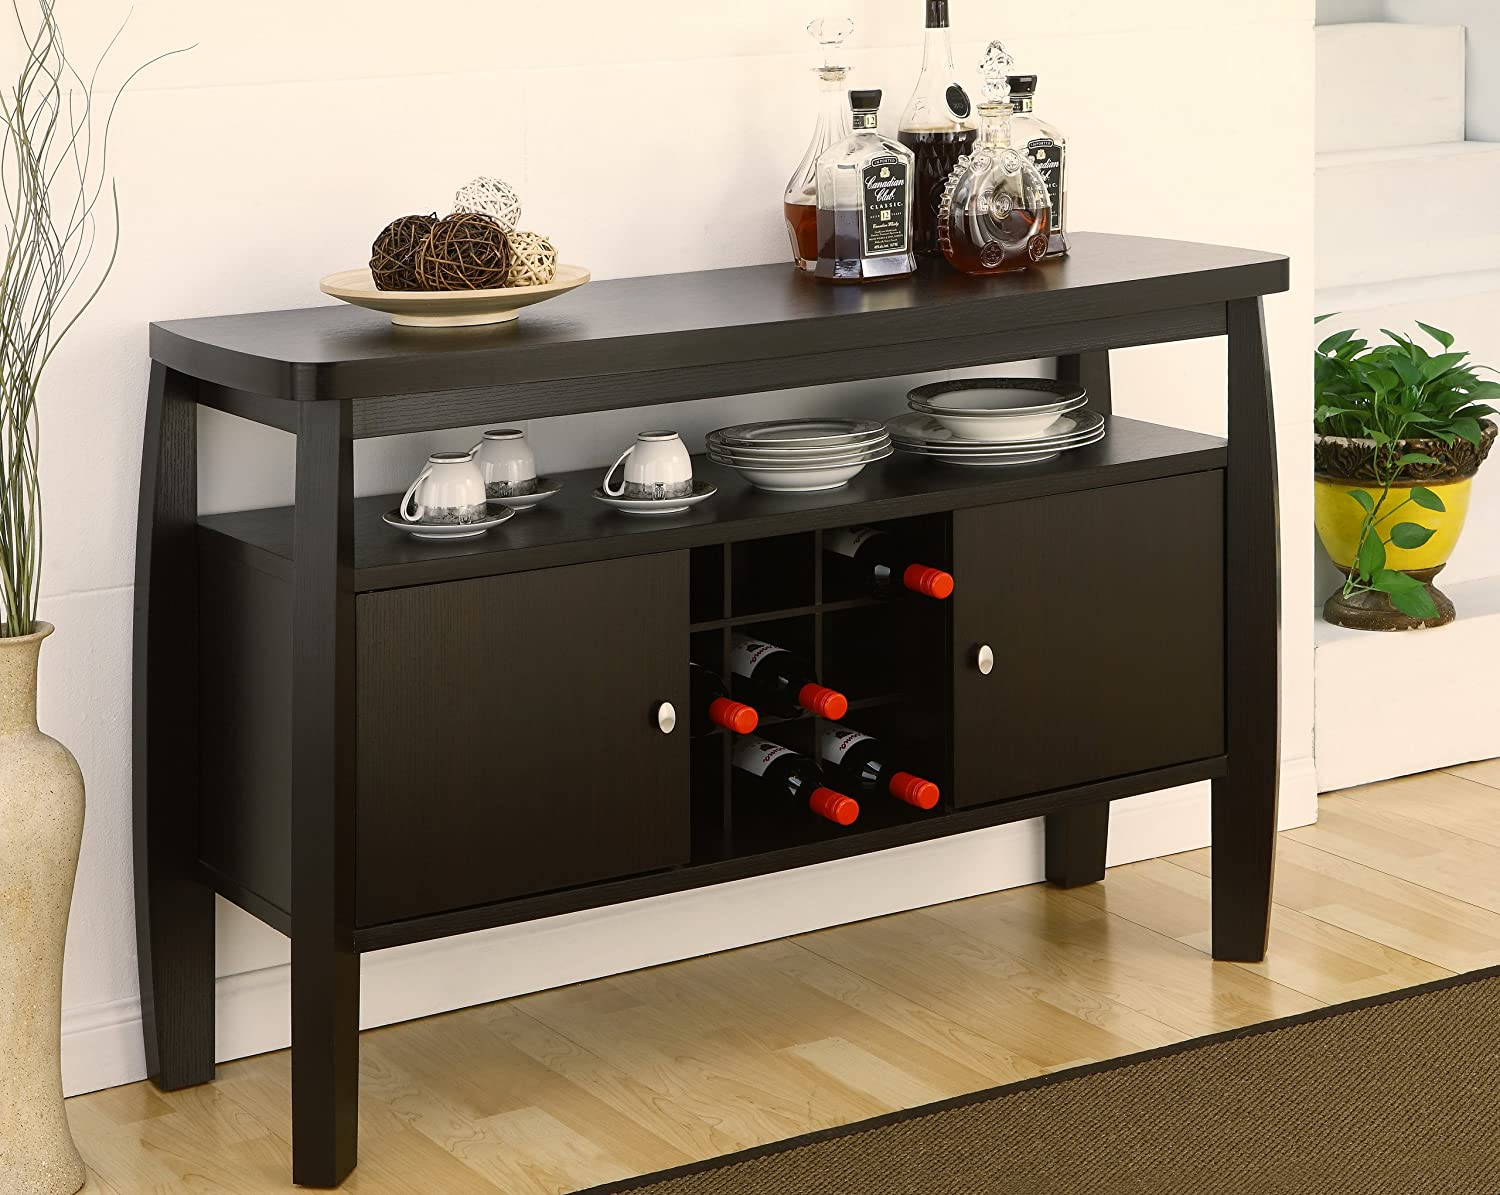 Amazon com   ioHOMES Clyton Dining Buffet  Dark Espresso   Buffets    Sideboards. Amazon com   ioHOMES Clyton Dining Buffet  Dark Espresso   Buffets